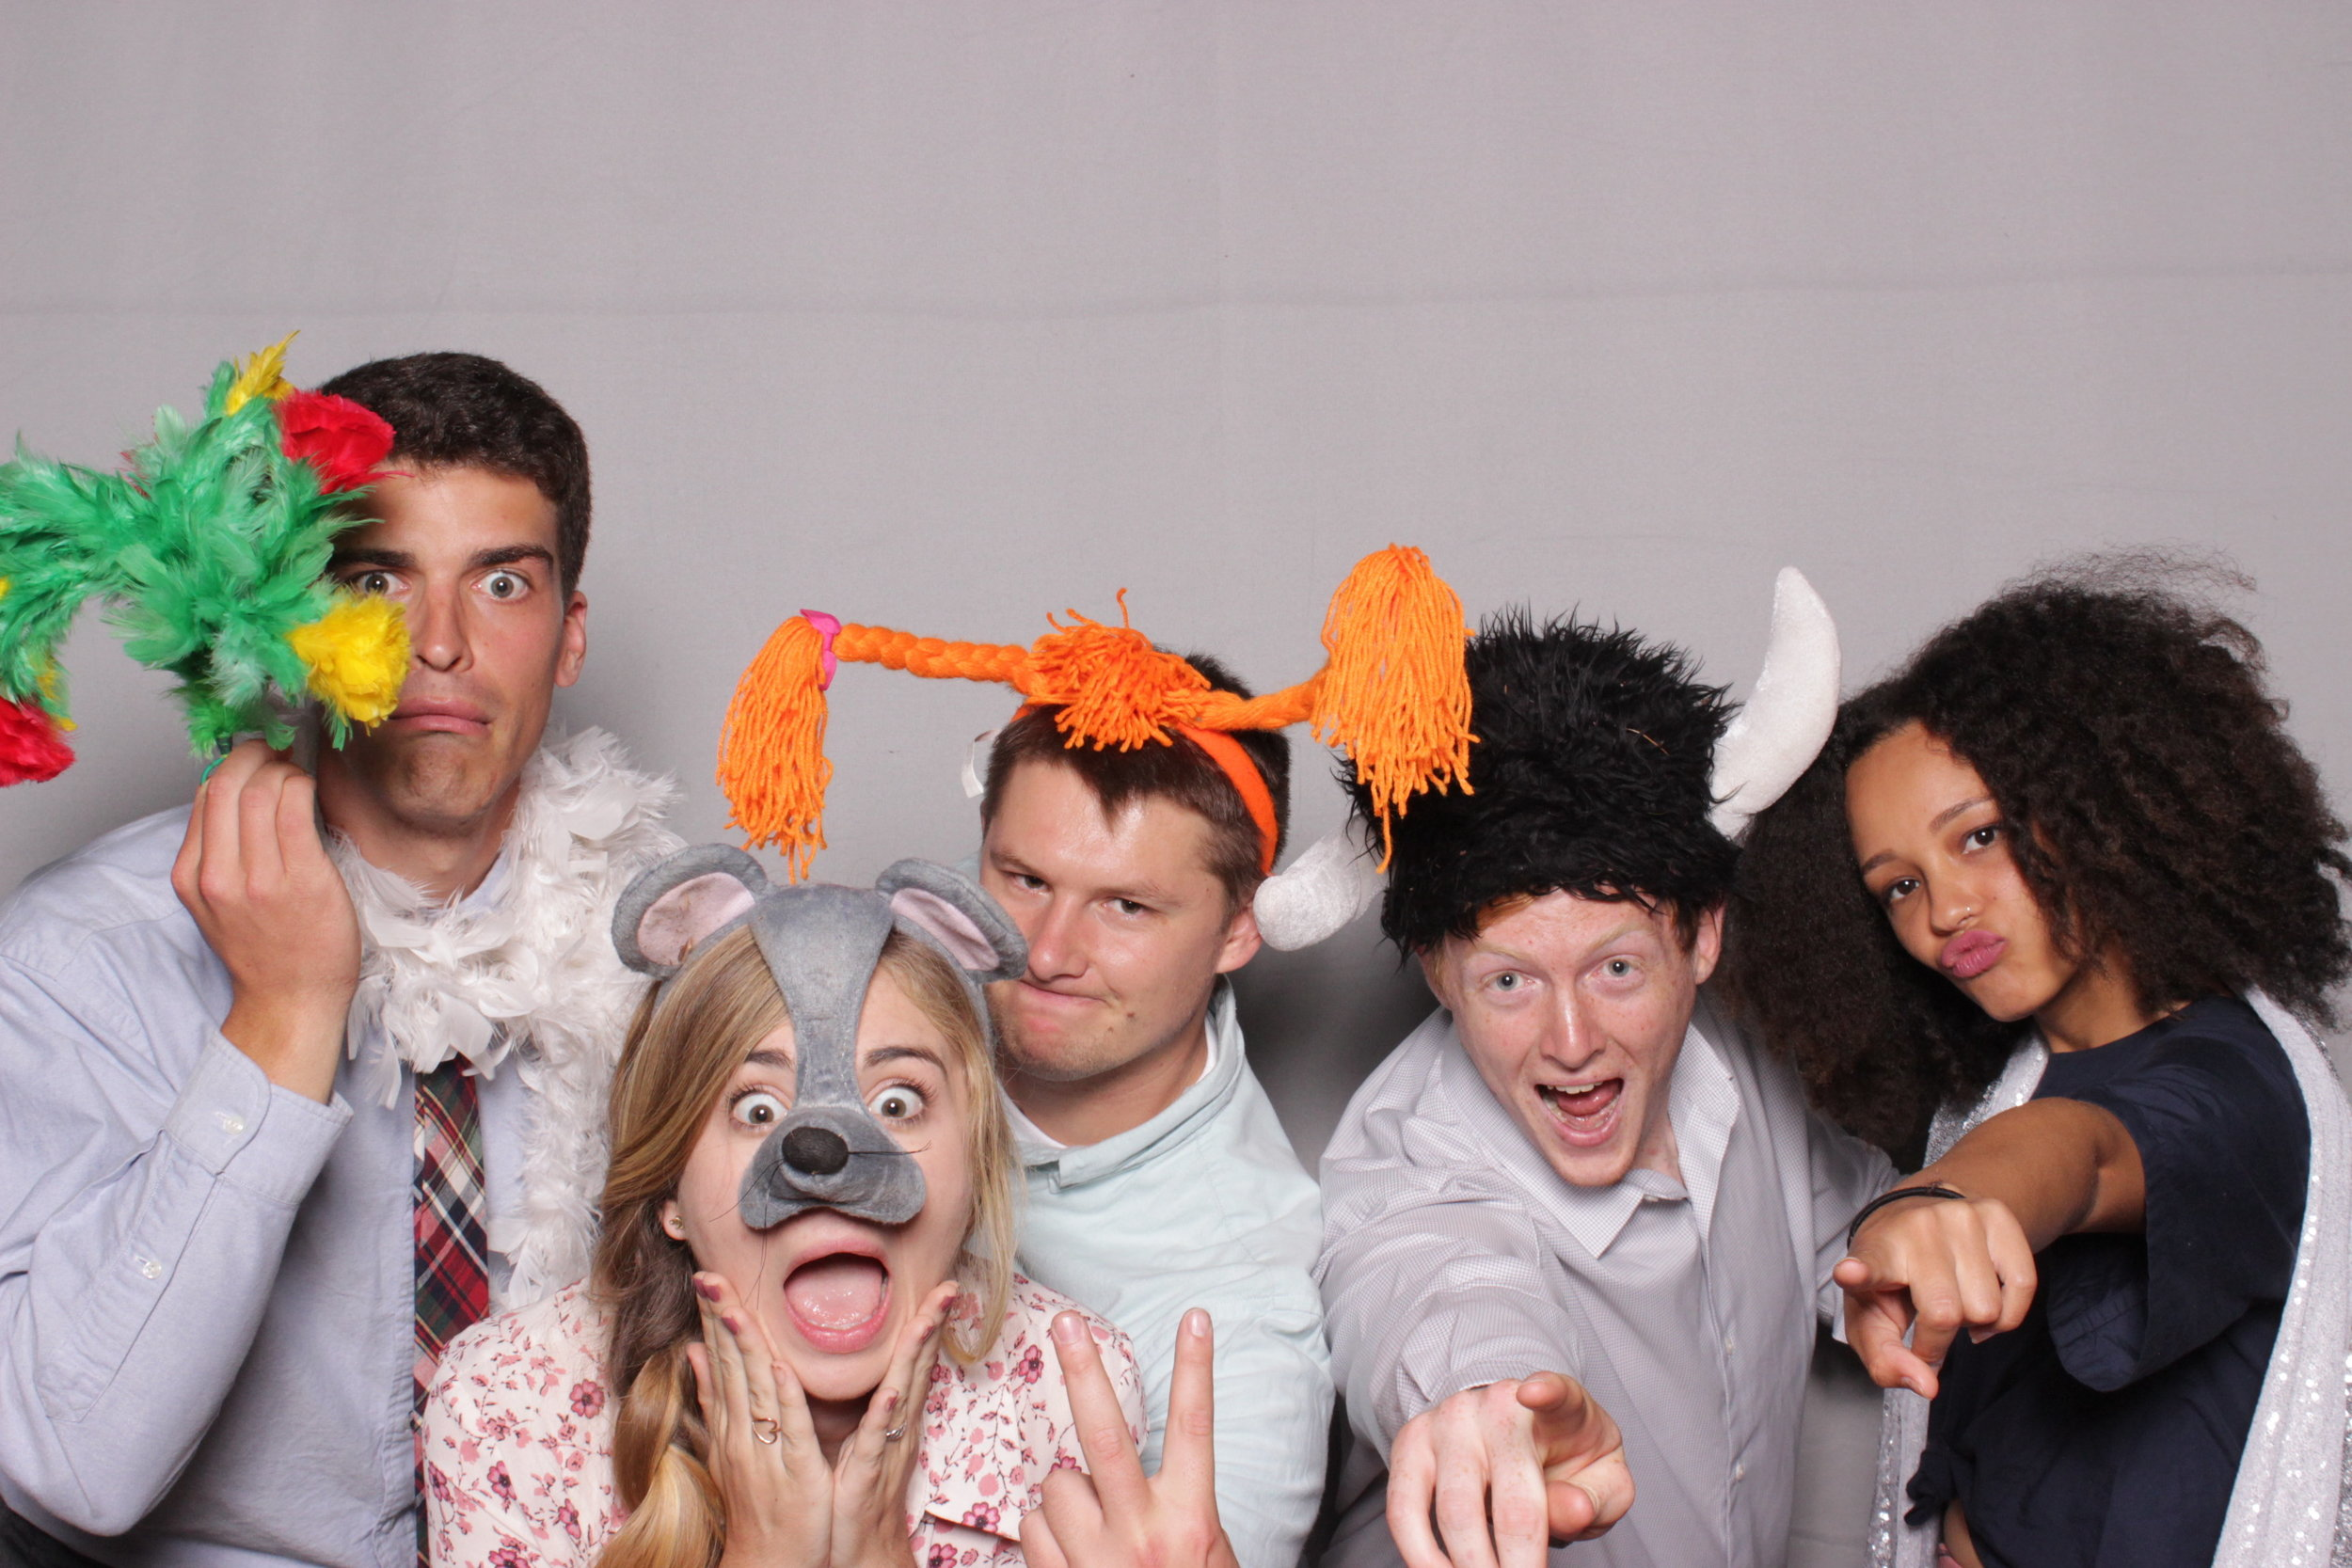 photo-booth-rental-chico-california-gale-vineyards-wedding-terrified-mouse